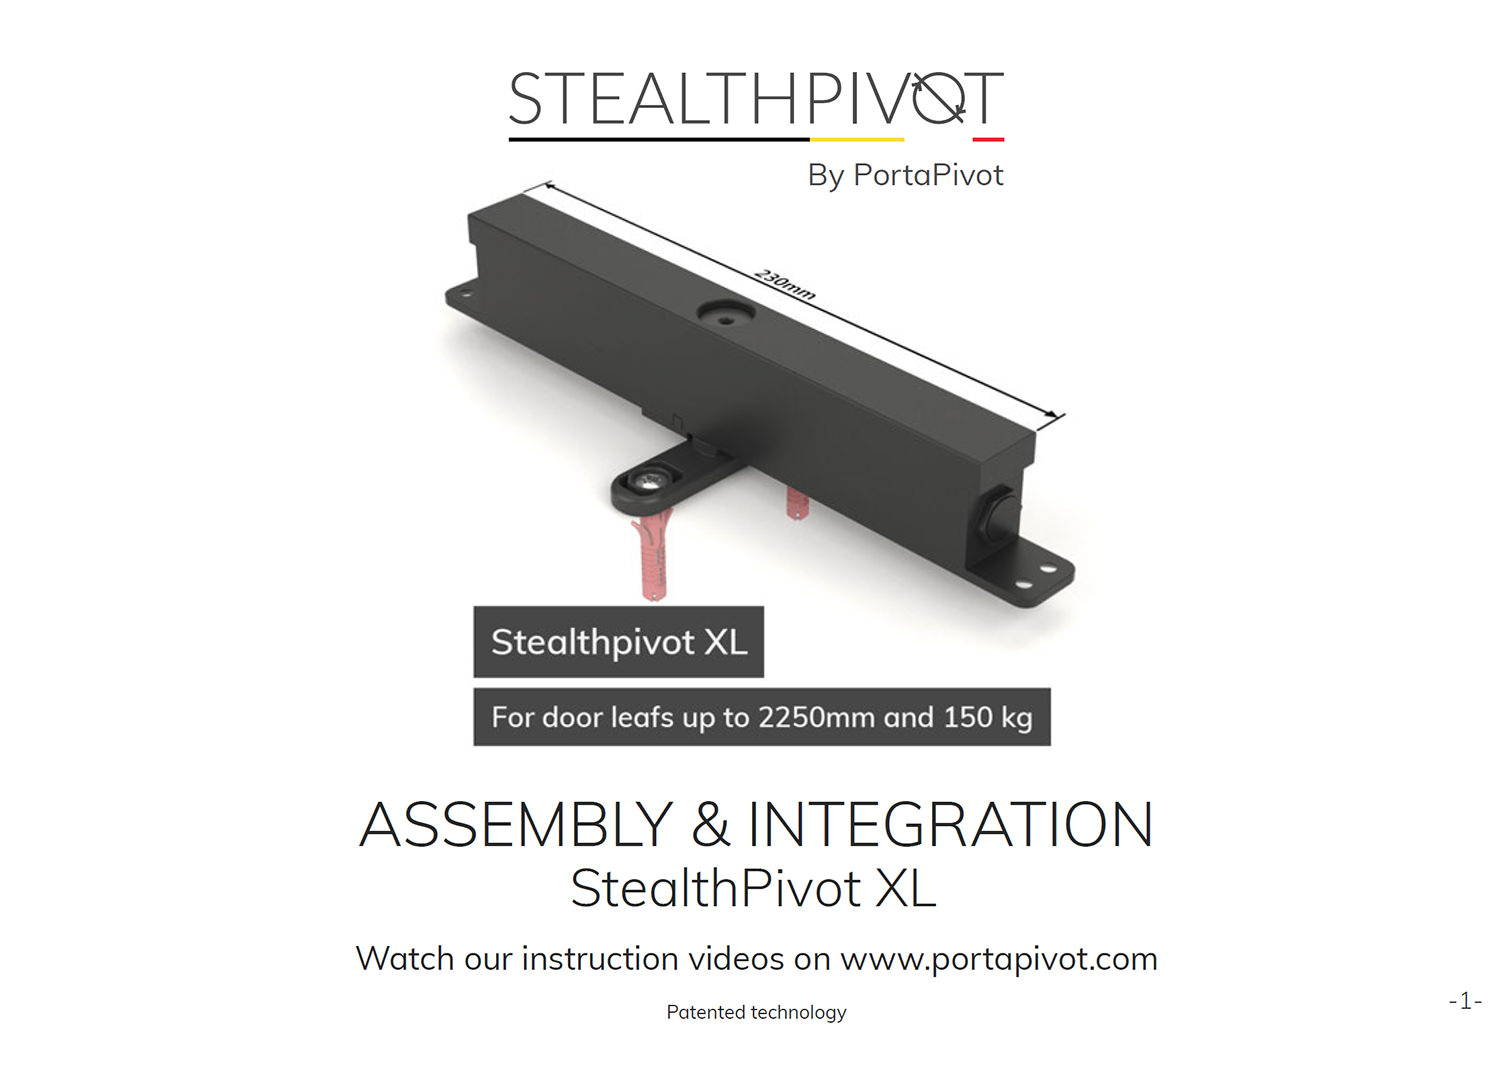 Stealth Pivot XL assembly and installation manual